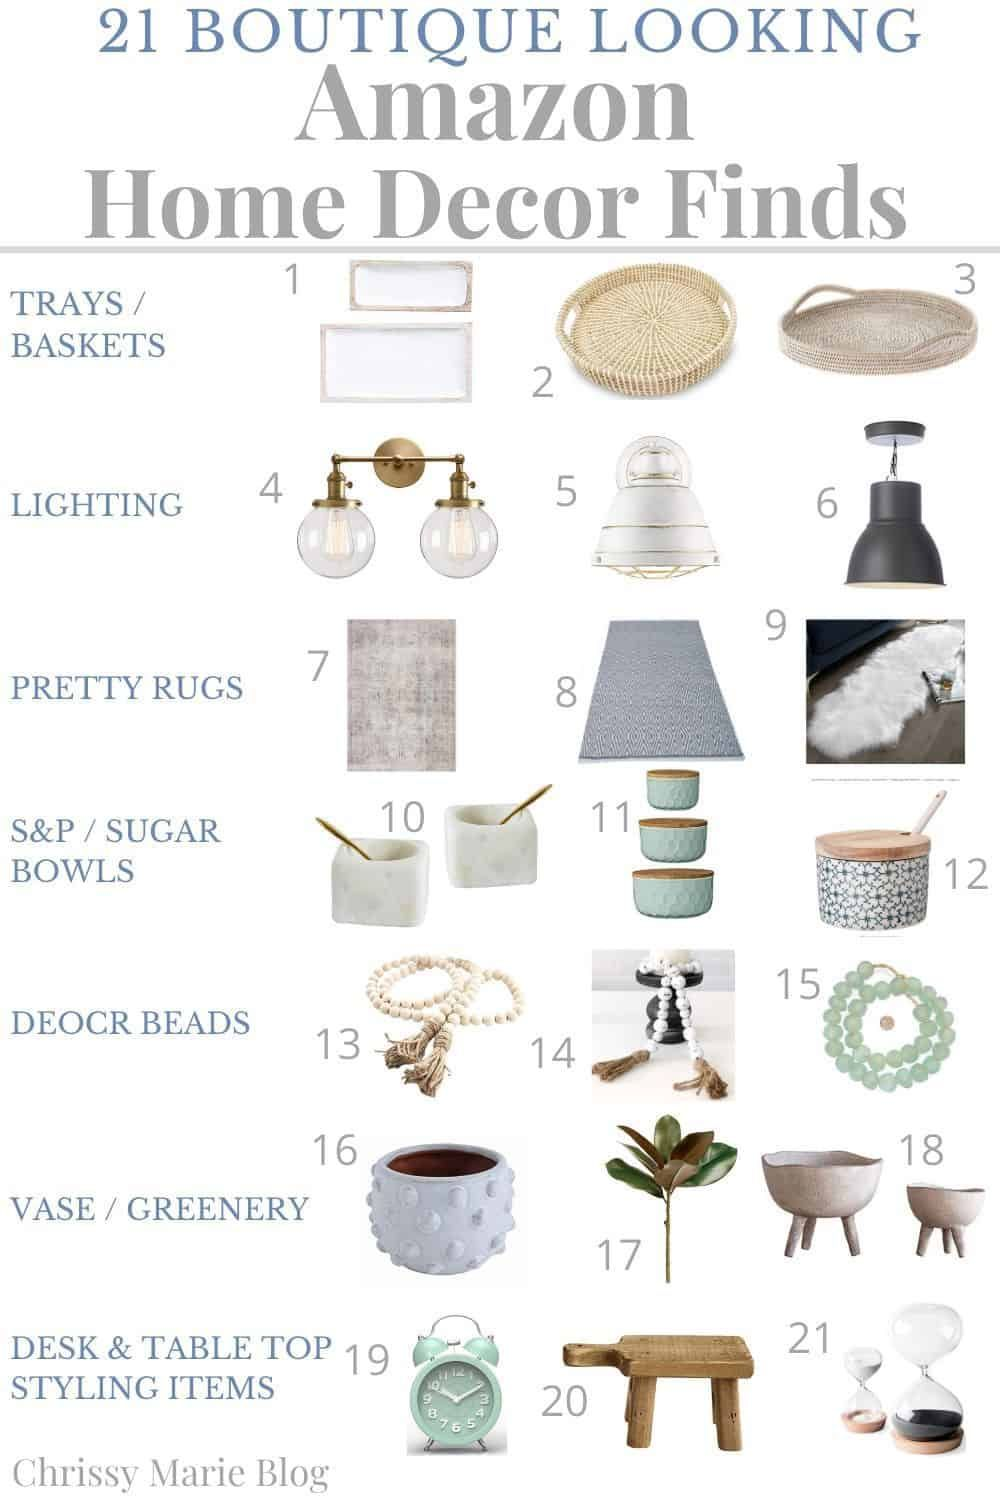 Want to freshen up your home but don't have time for endless shopping? I've gathered 21 affordable Amazon home decor finds that look like they came straight from a boutique!